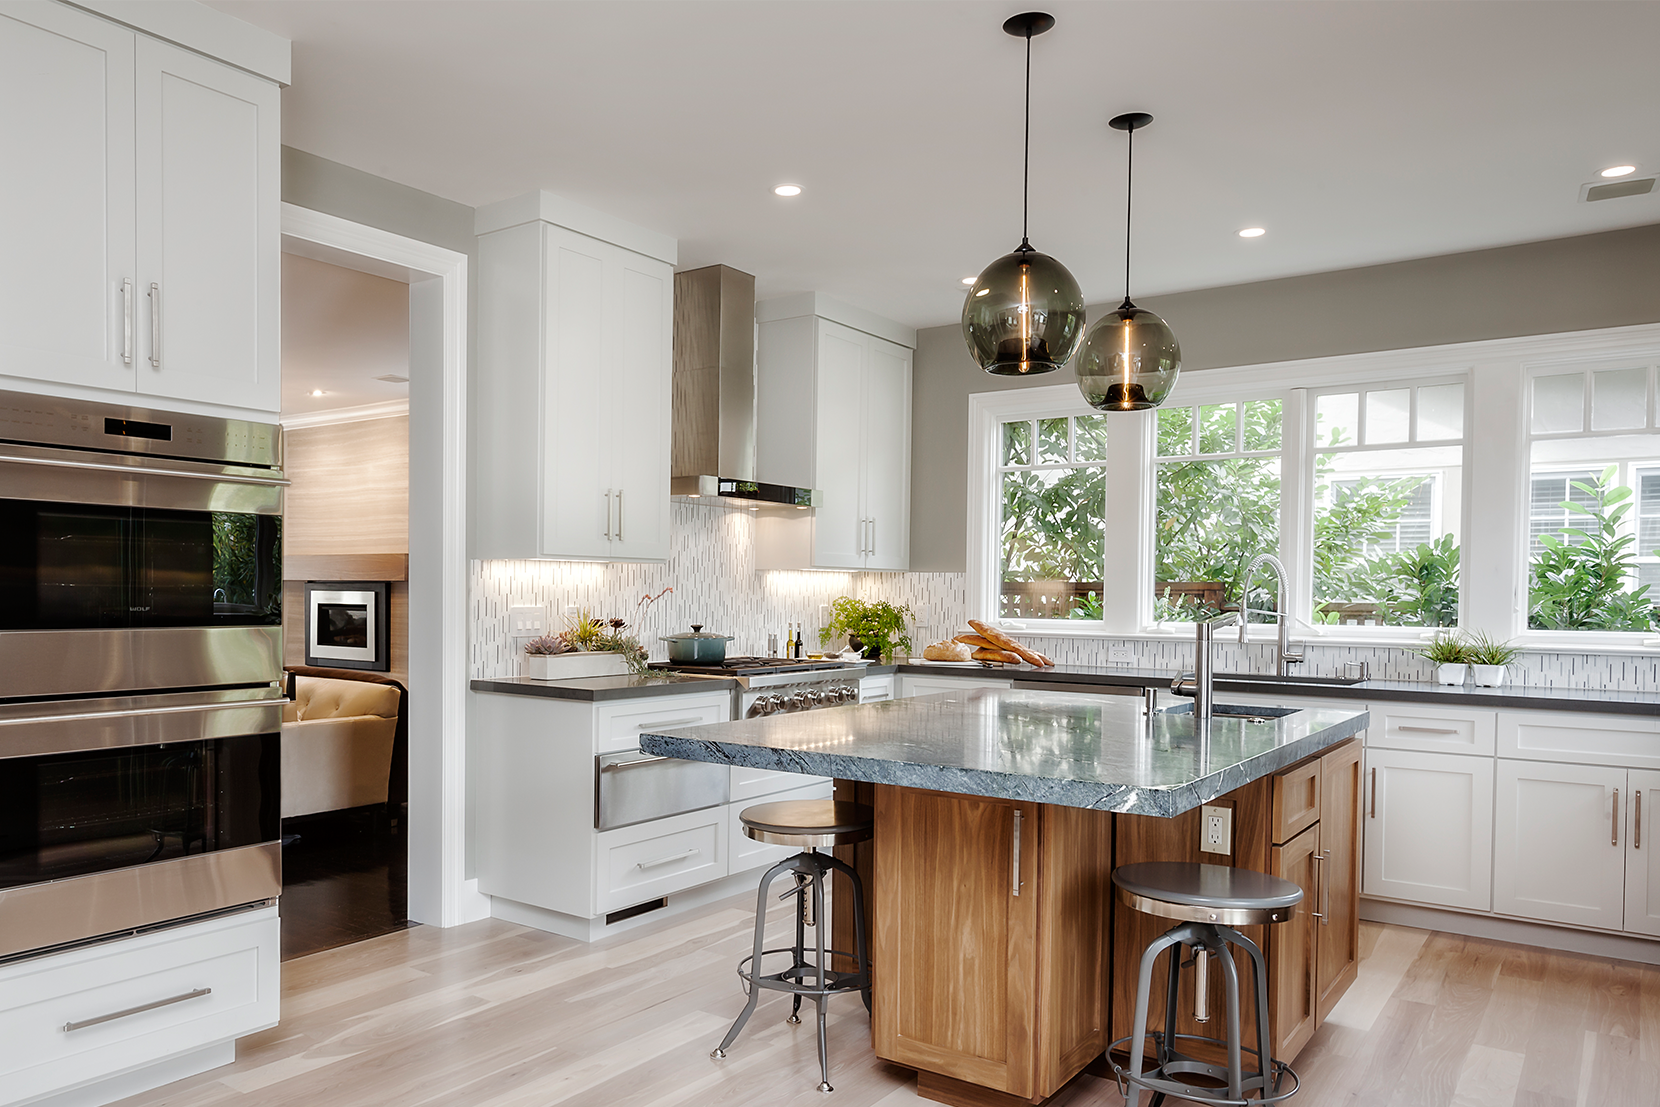 Lighting-Project-Pages_0007s_0009_Kitchen-Modern-Pendant-Lights-Gray.png